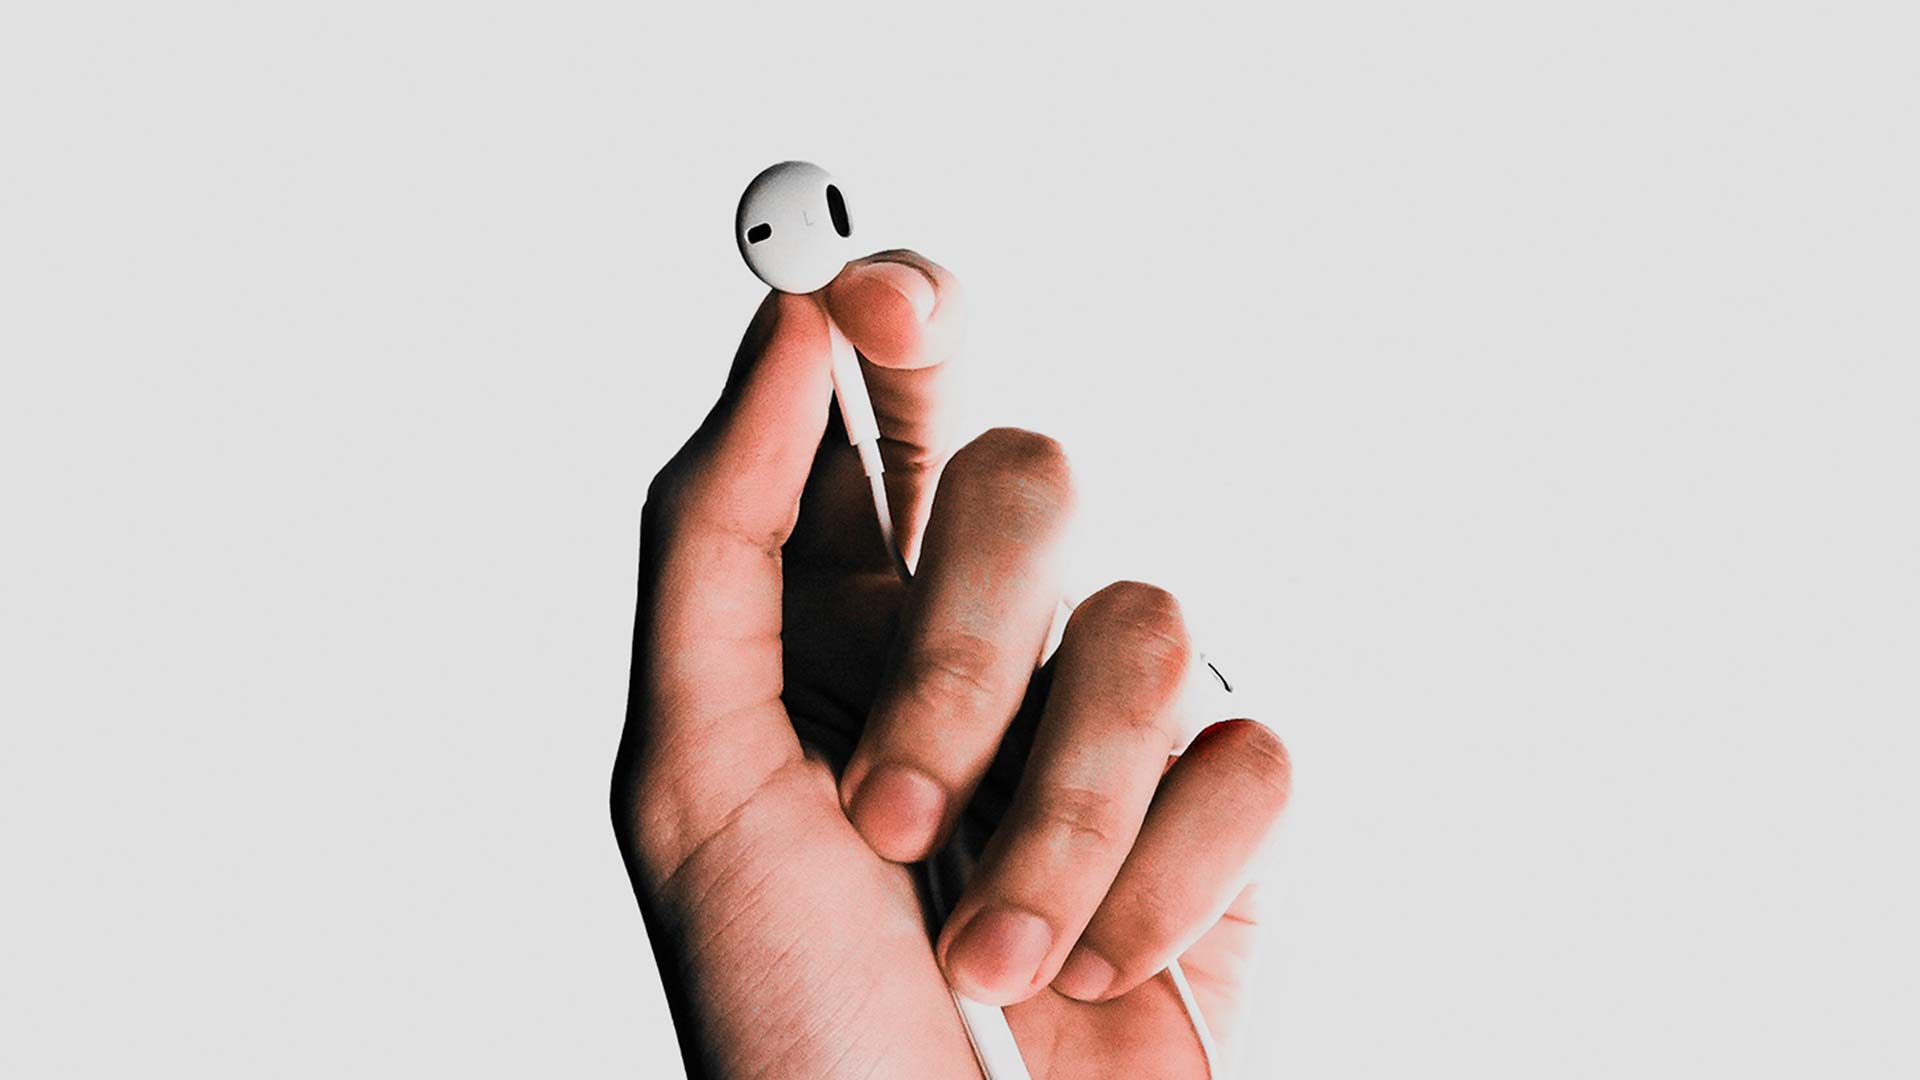 Hand holding earbud